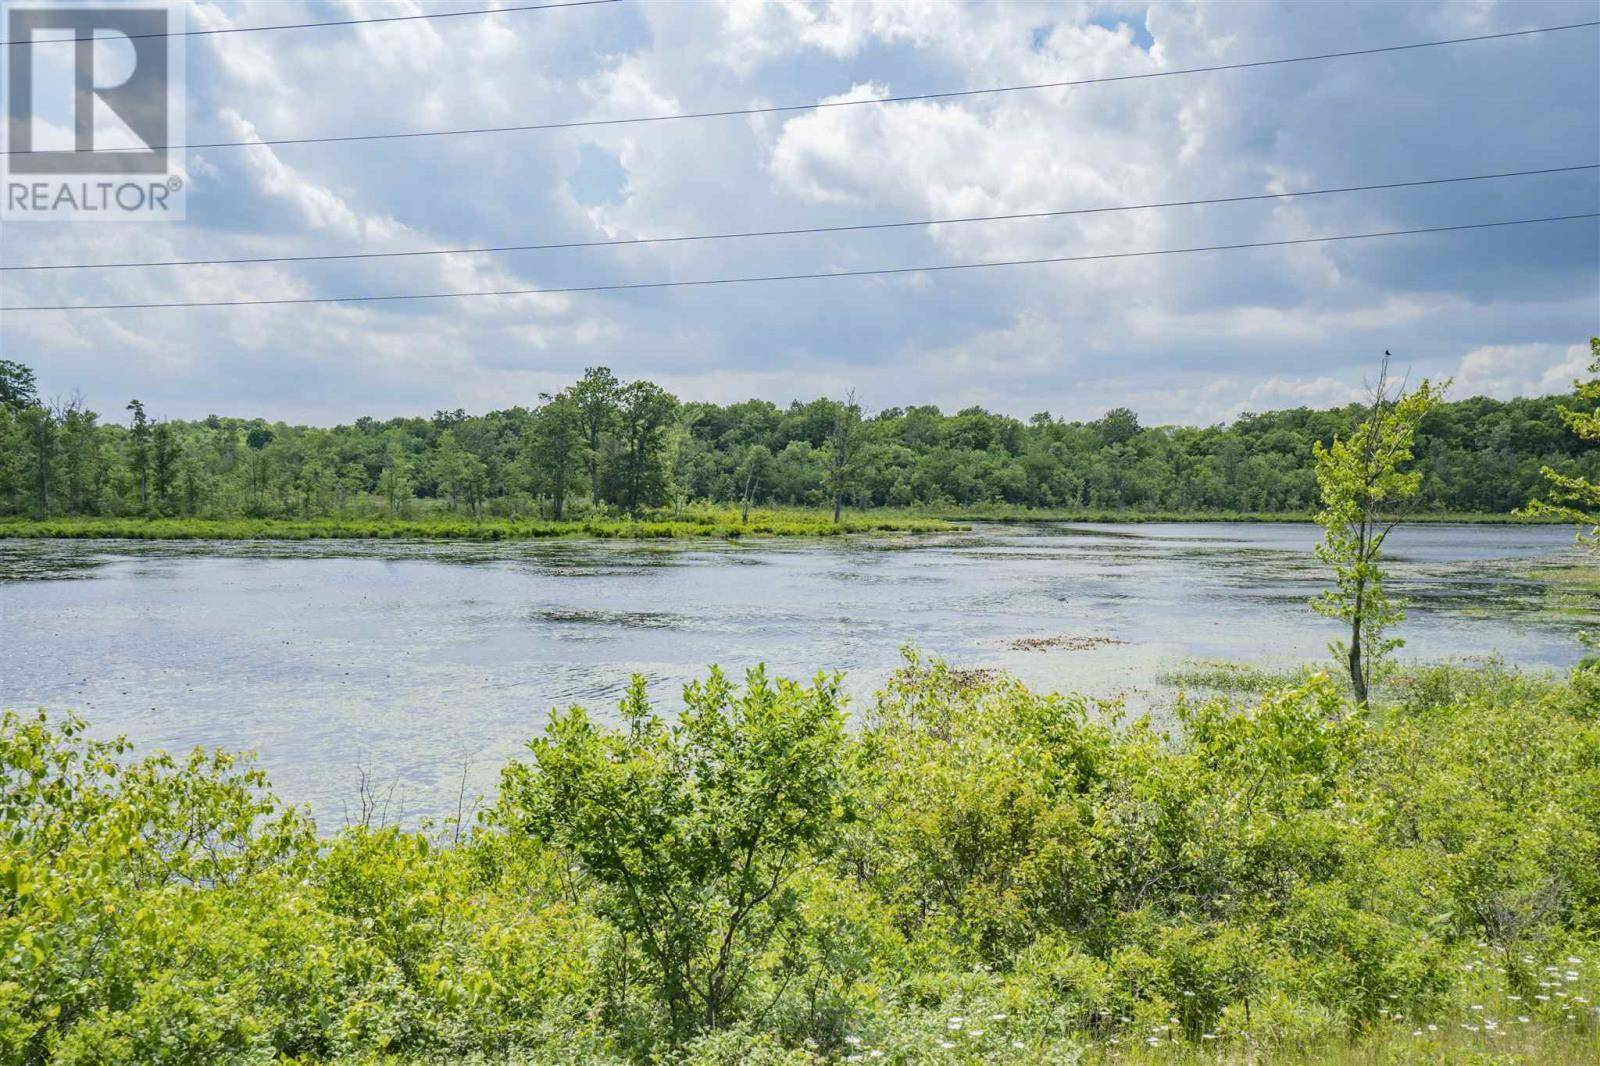 Residential property for sale at 4102 Desert Lake Rd South Frontenac Twp Ontario - MLS: K19004285a